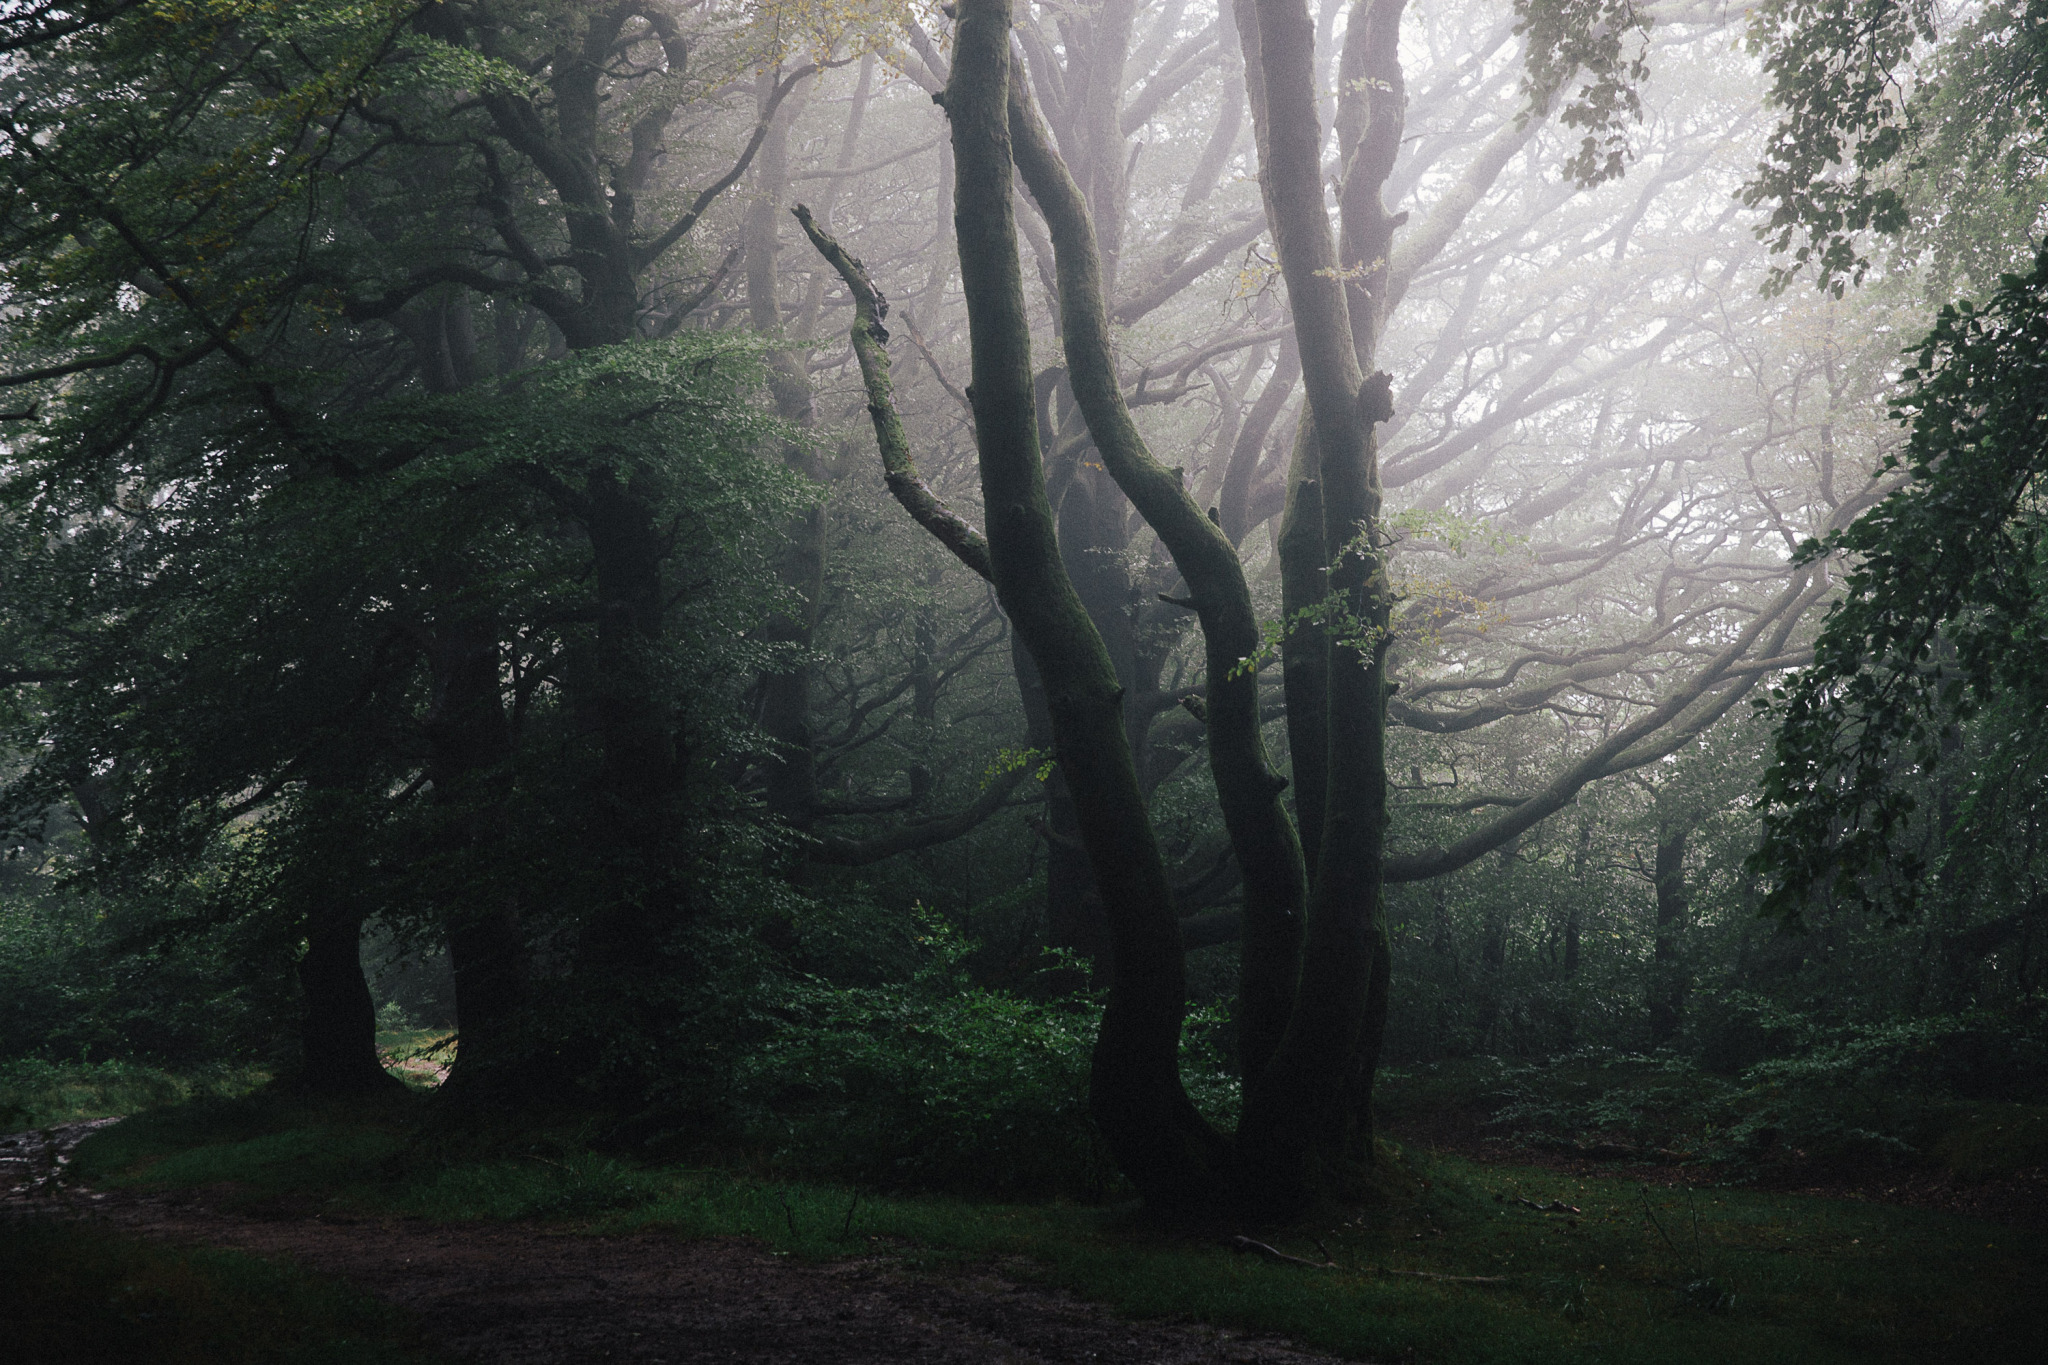 Quantock Forests, Somerset